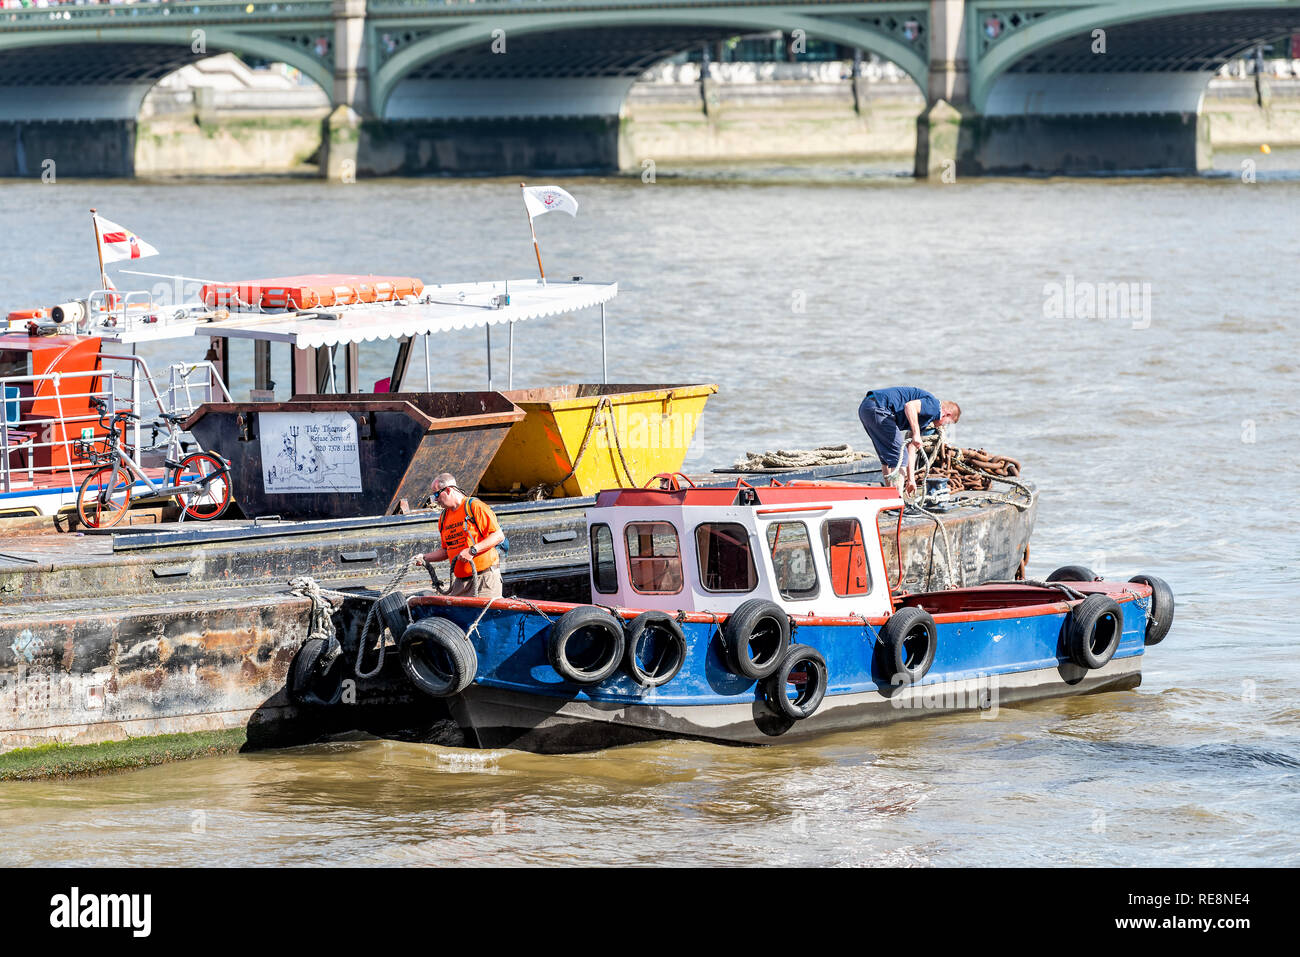 London, UK - June 21, 2018: Closeup of one industrial moored ship on Thames River water in summer sunny day with people men working cleaning from wast - Stock Image